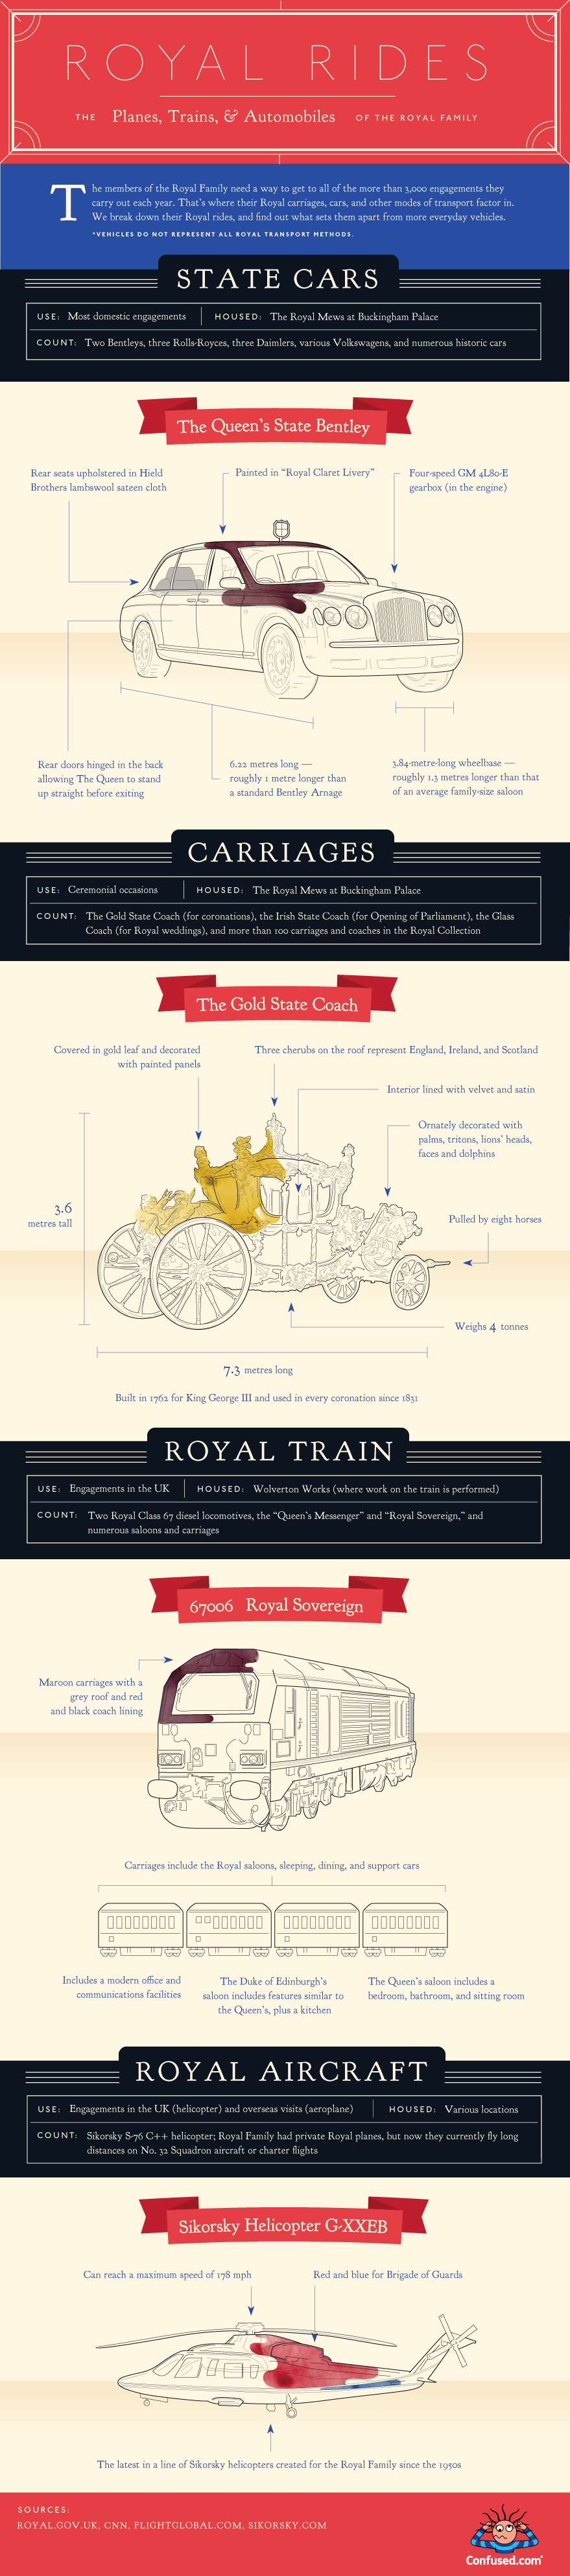 Royal Rides: How Britain's Royal Family Gets Around